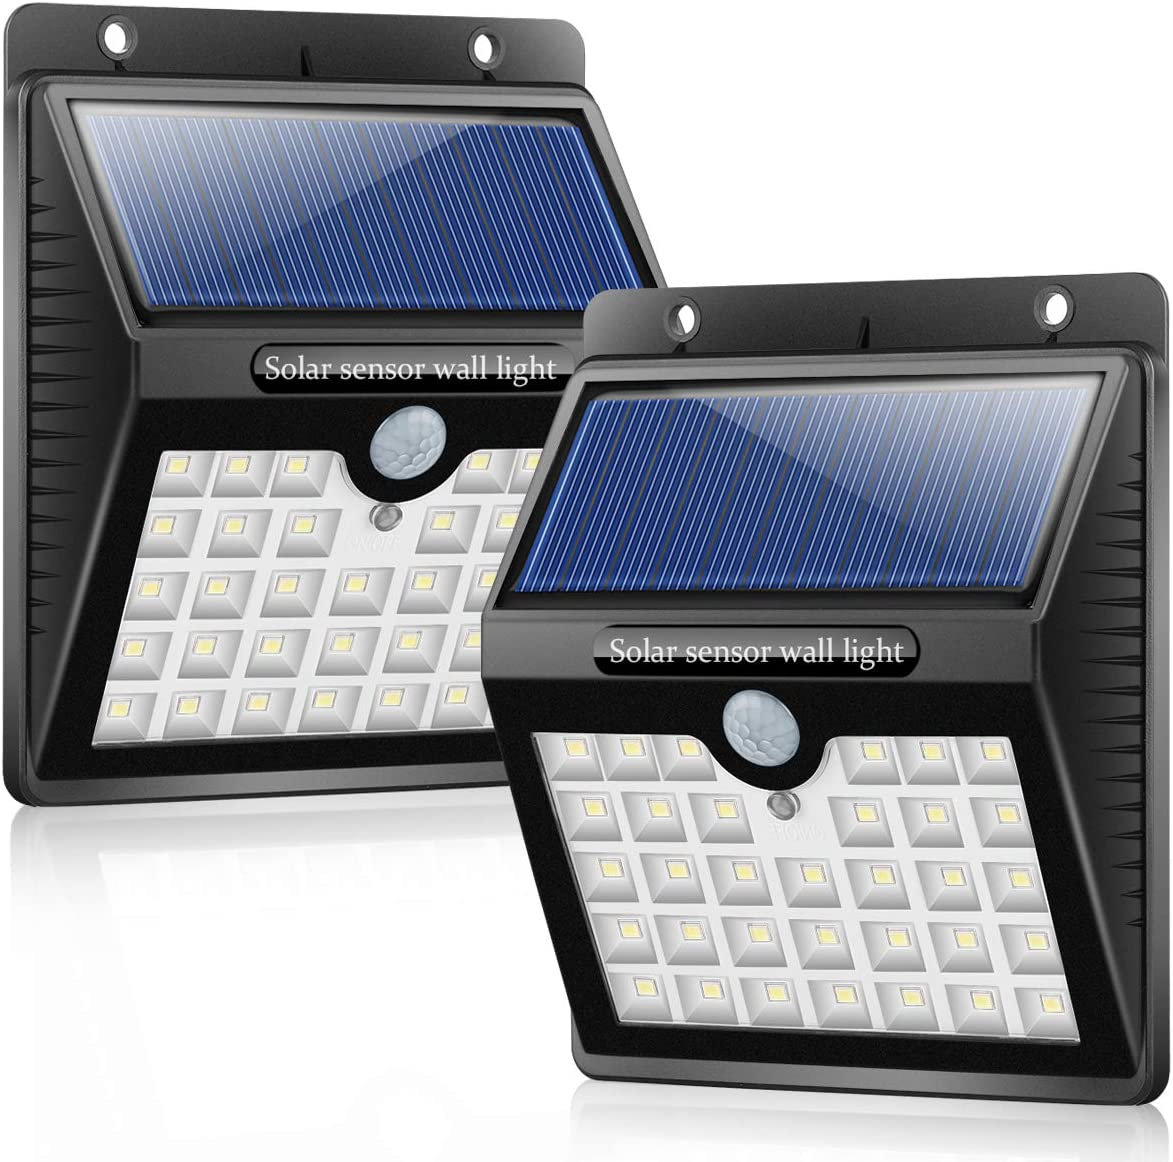 Solar Wall Light Motion Sensor Waterproof 33 LEDs Solar Powered Wireless Wall Light 3 Intelligent Modes Outdoor Security Light for Garden Patio Yard Deck Fence 2 Pack